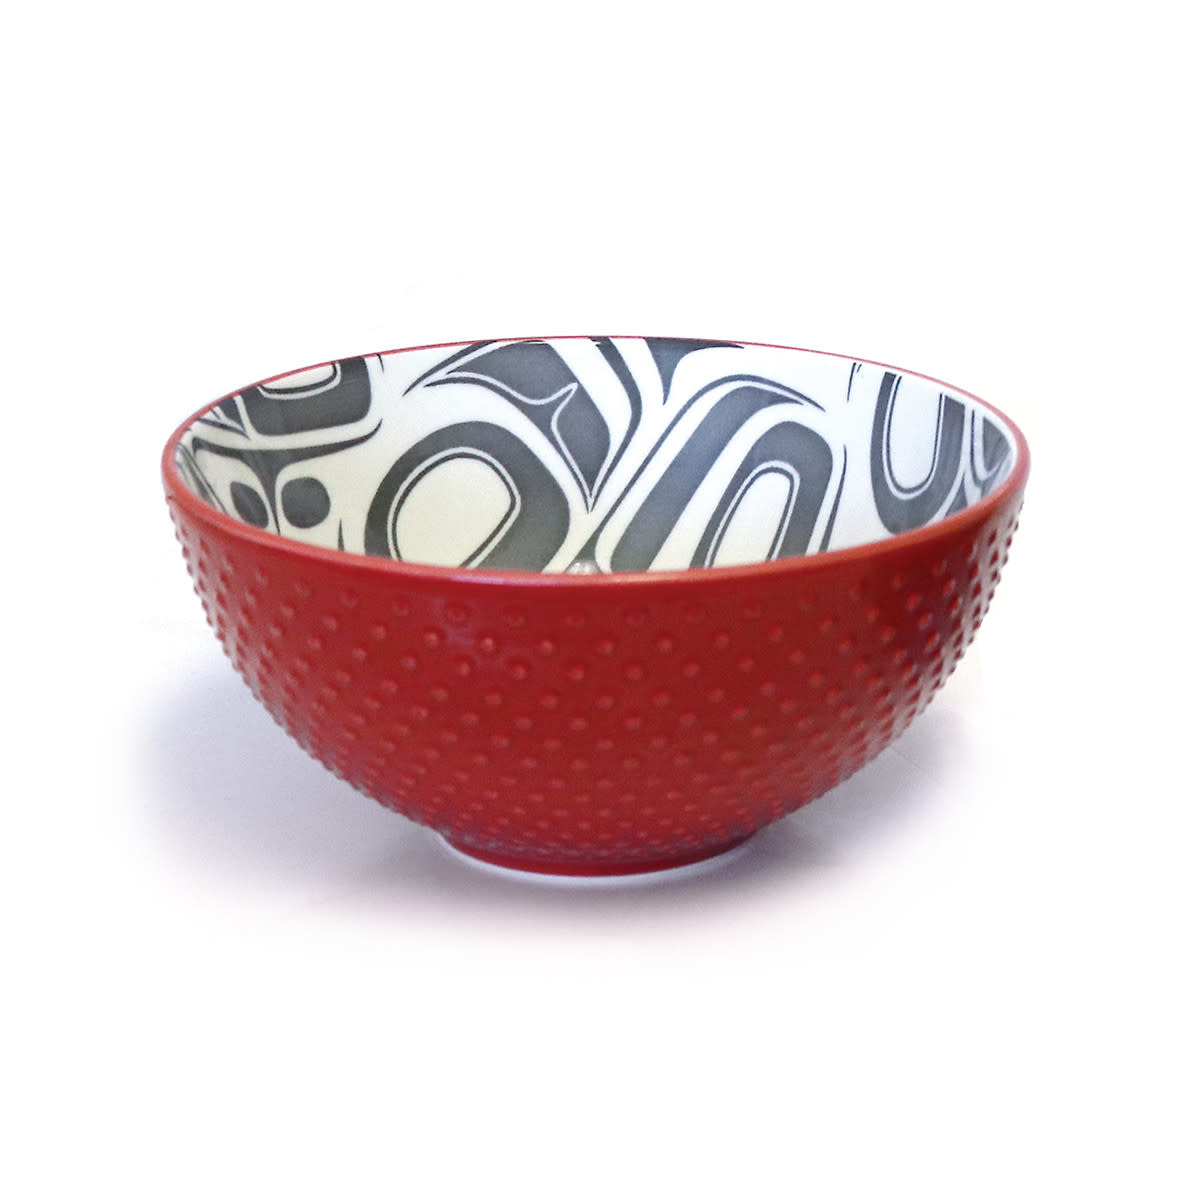 Porcelain Art Bowl - Medium-1